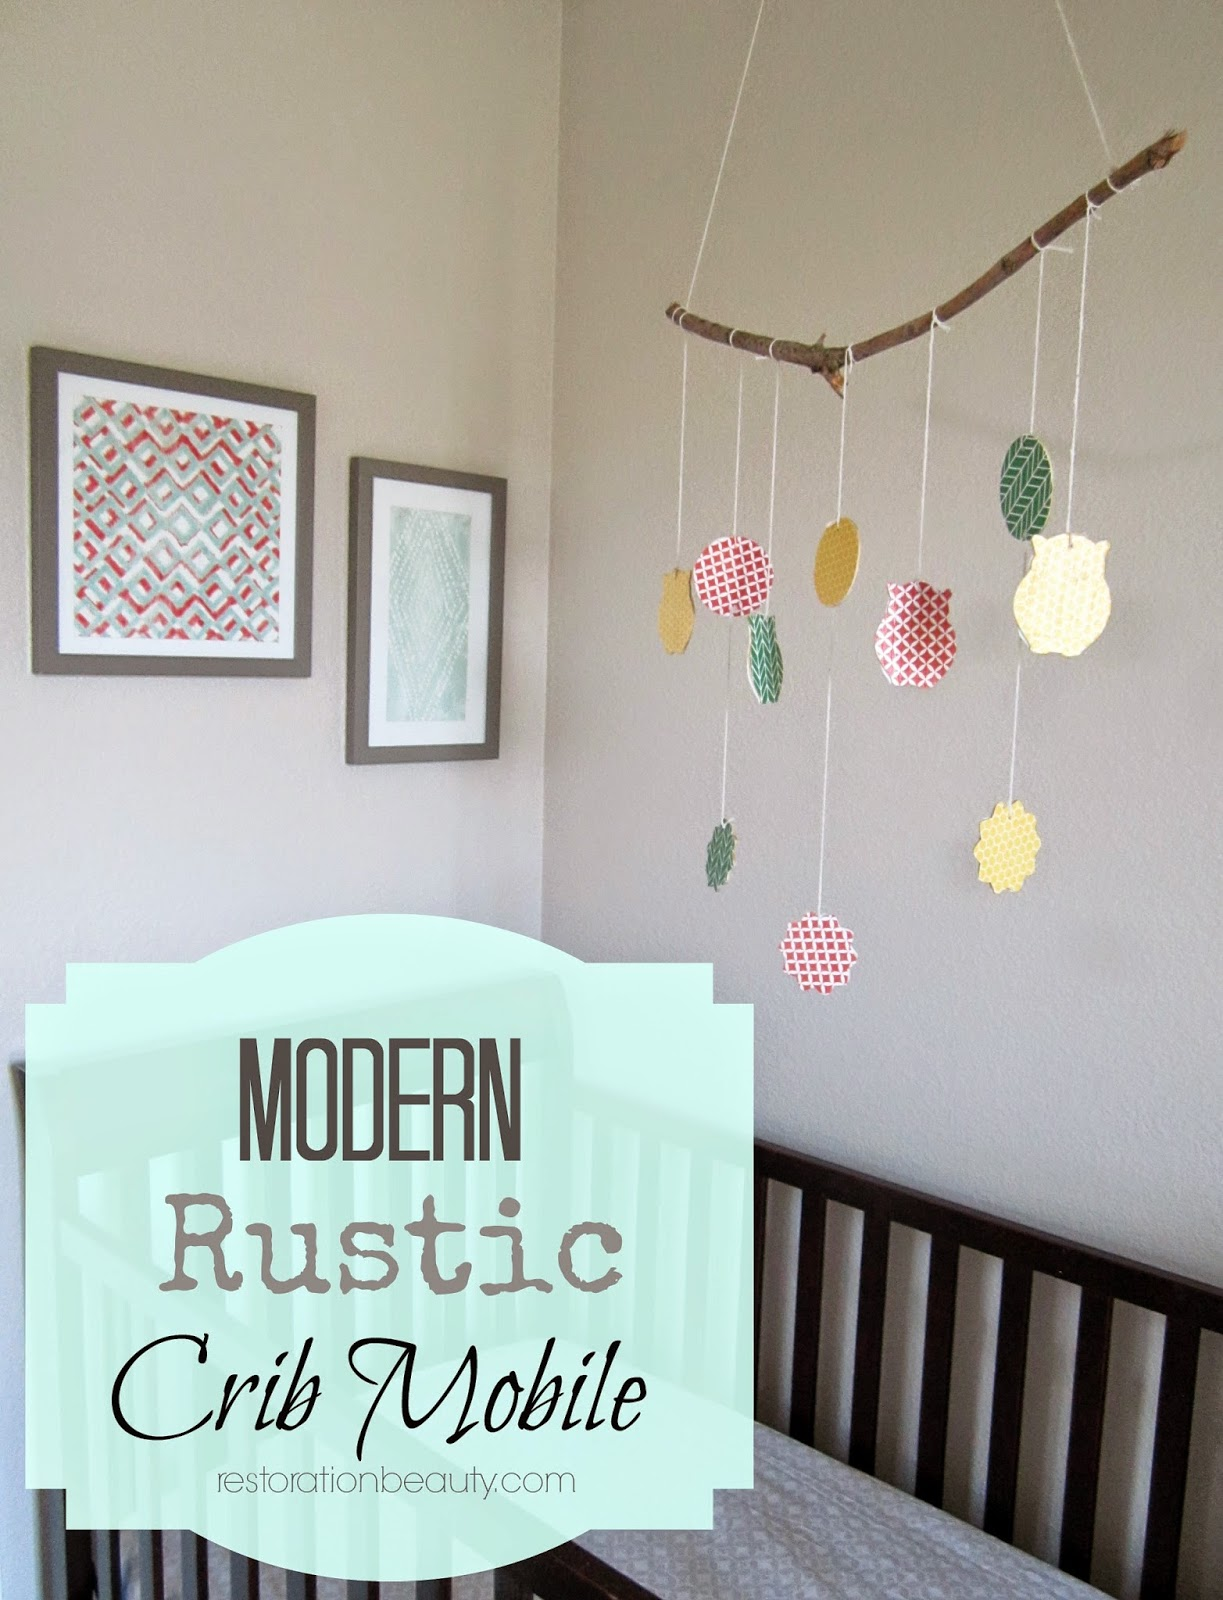 restoration beauty modern rustic crib mobile - as you all know after many different nursery inspirations we ended upmixing a couple of styles and ended up dubbing this room a modern rusticnursery